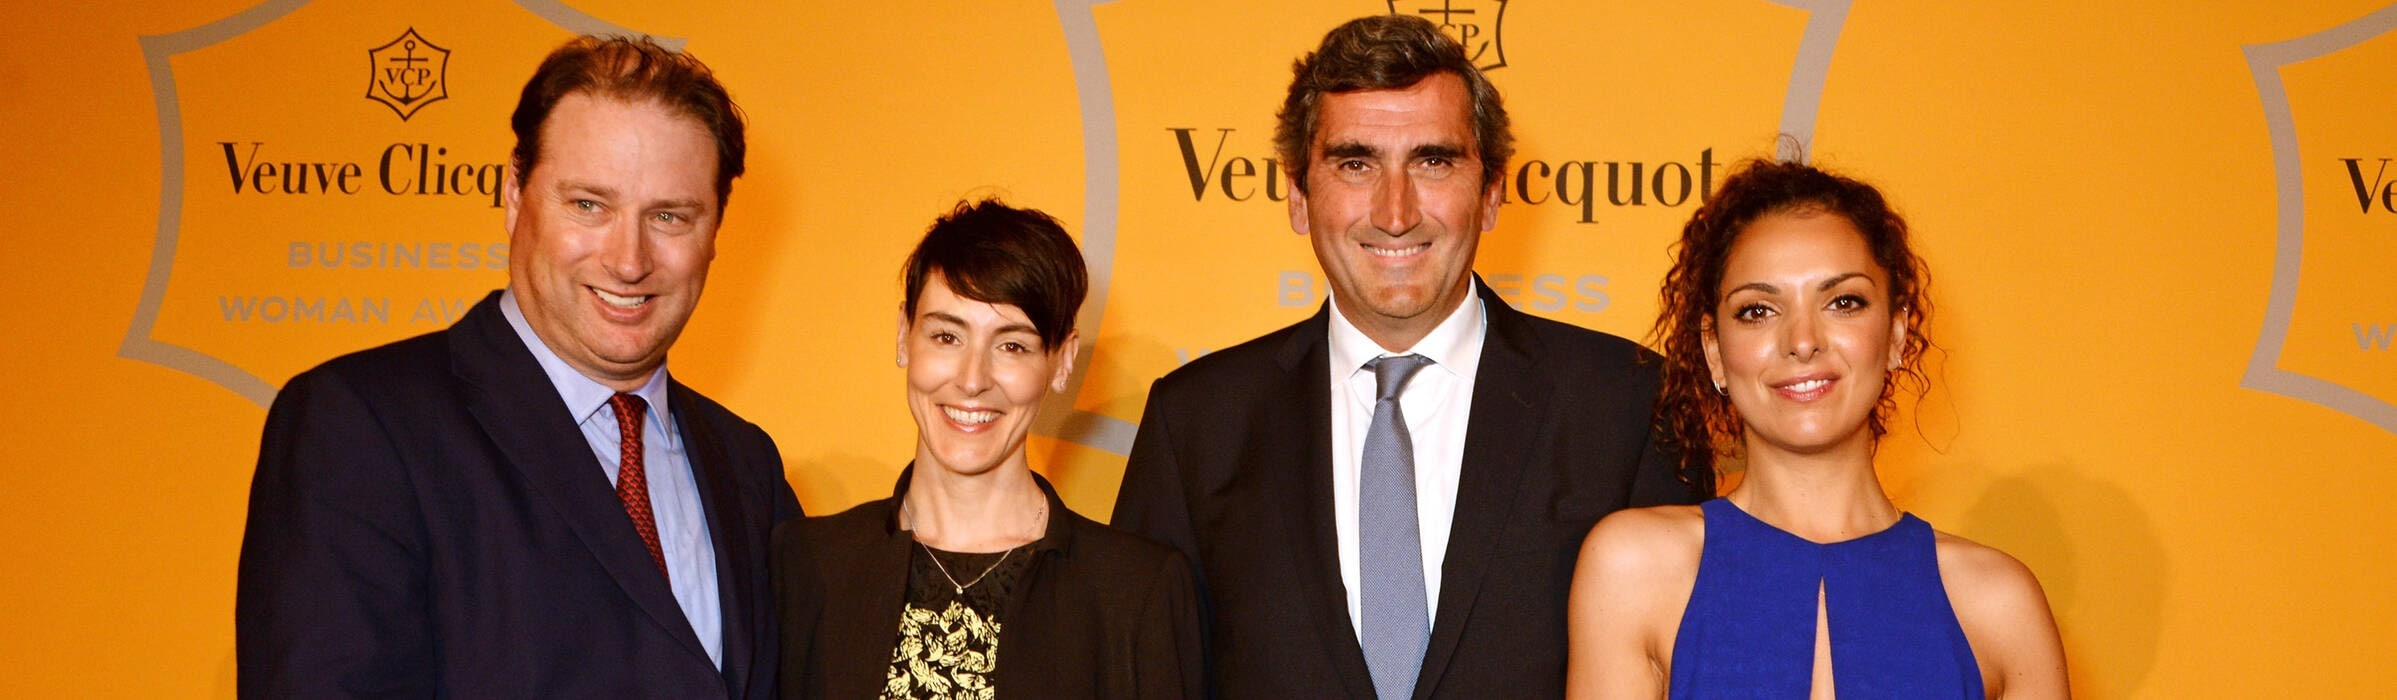 Veuve Clicquot - Business Woman Award